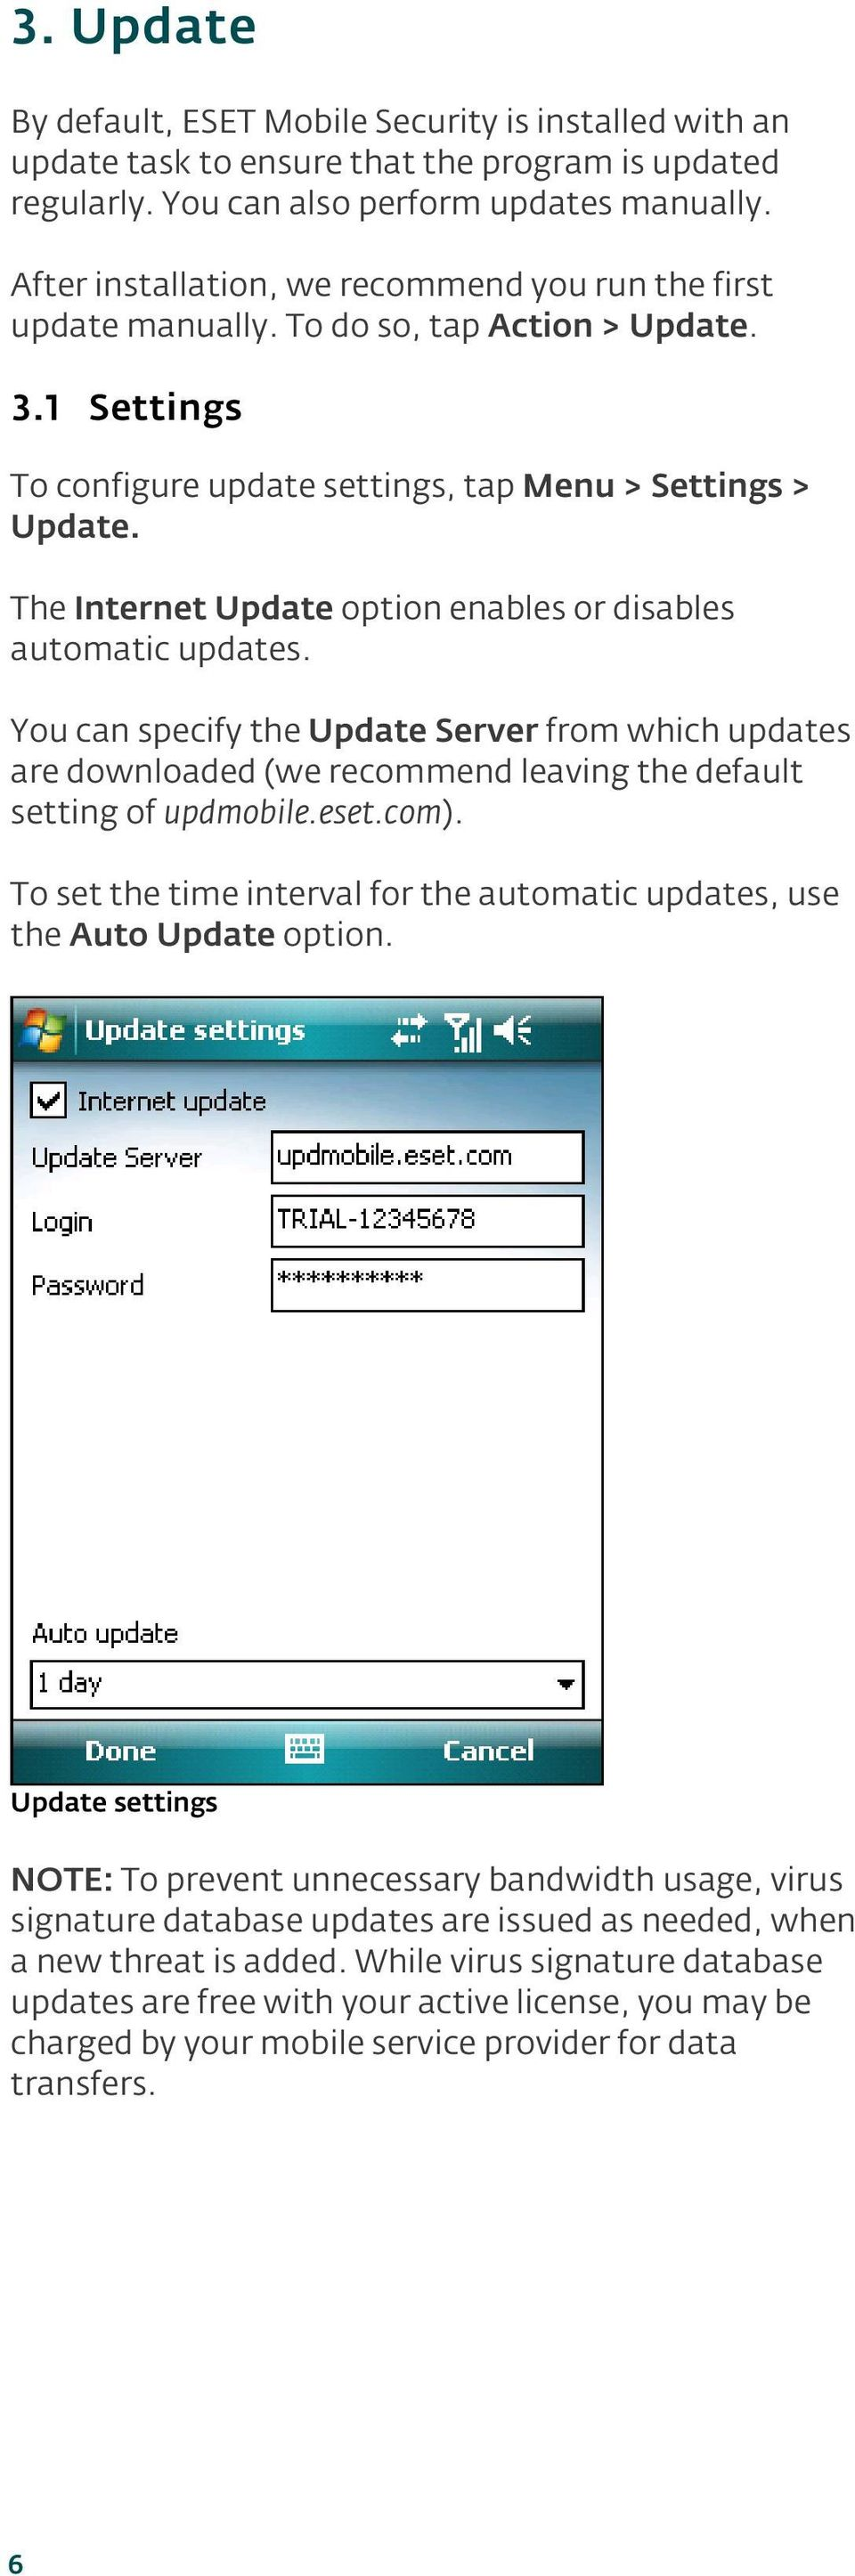 The Internet Update option enables or disables automatic updates. You can specify the Update Server from which updates are downloaded (we recommend leaving the default setting of updmobile.eset.com).